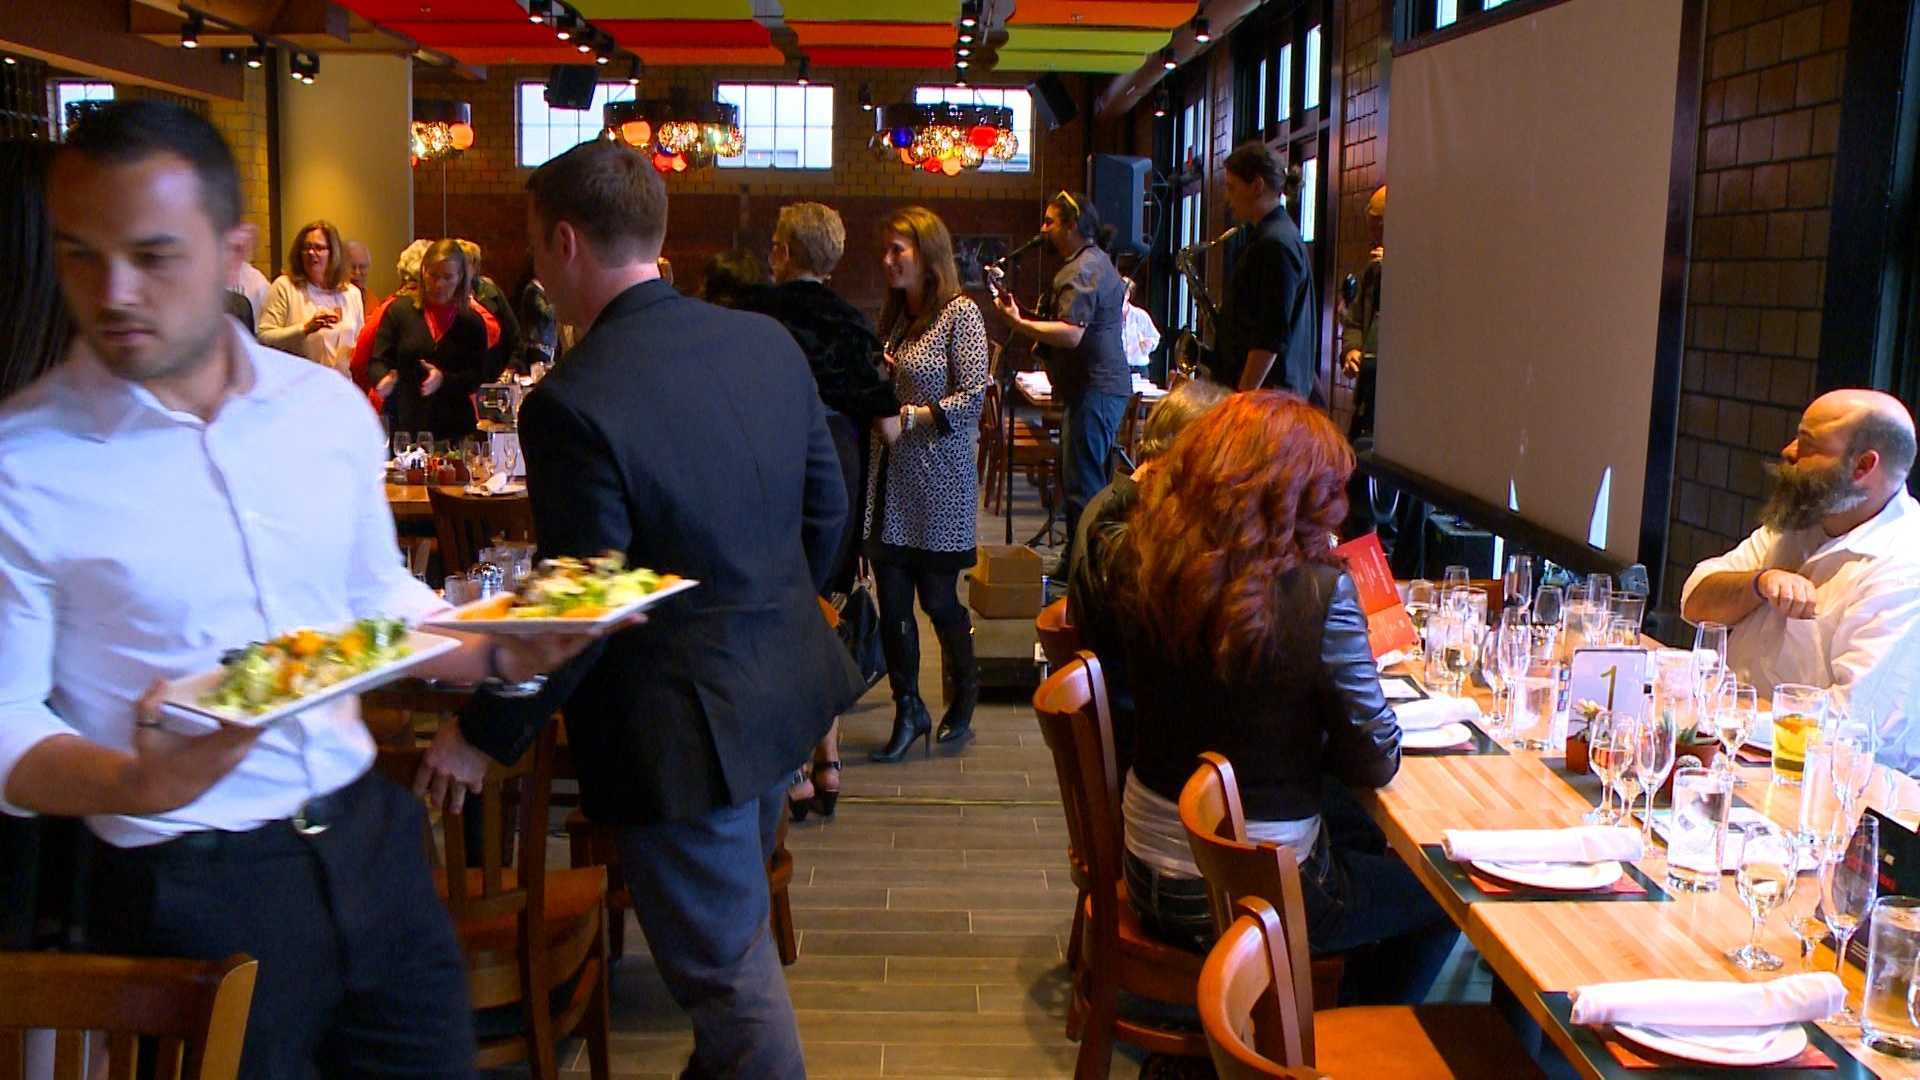 Fundraiser attendees get first look at newly renovated Des Moines Social Club